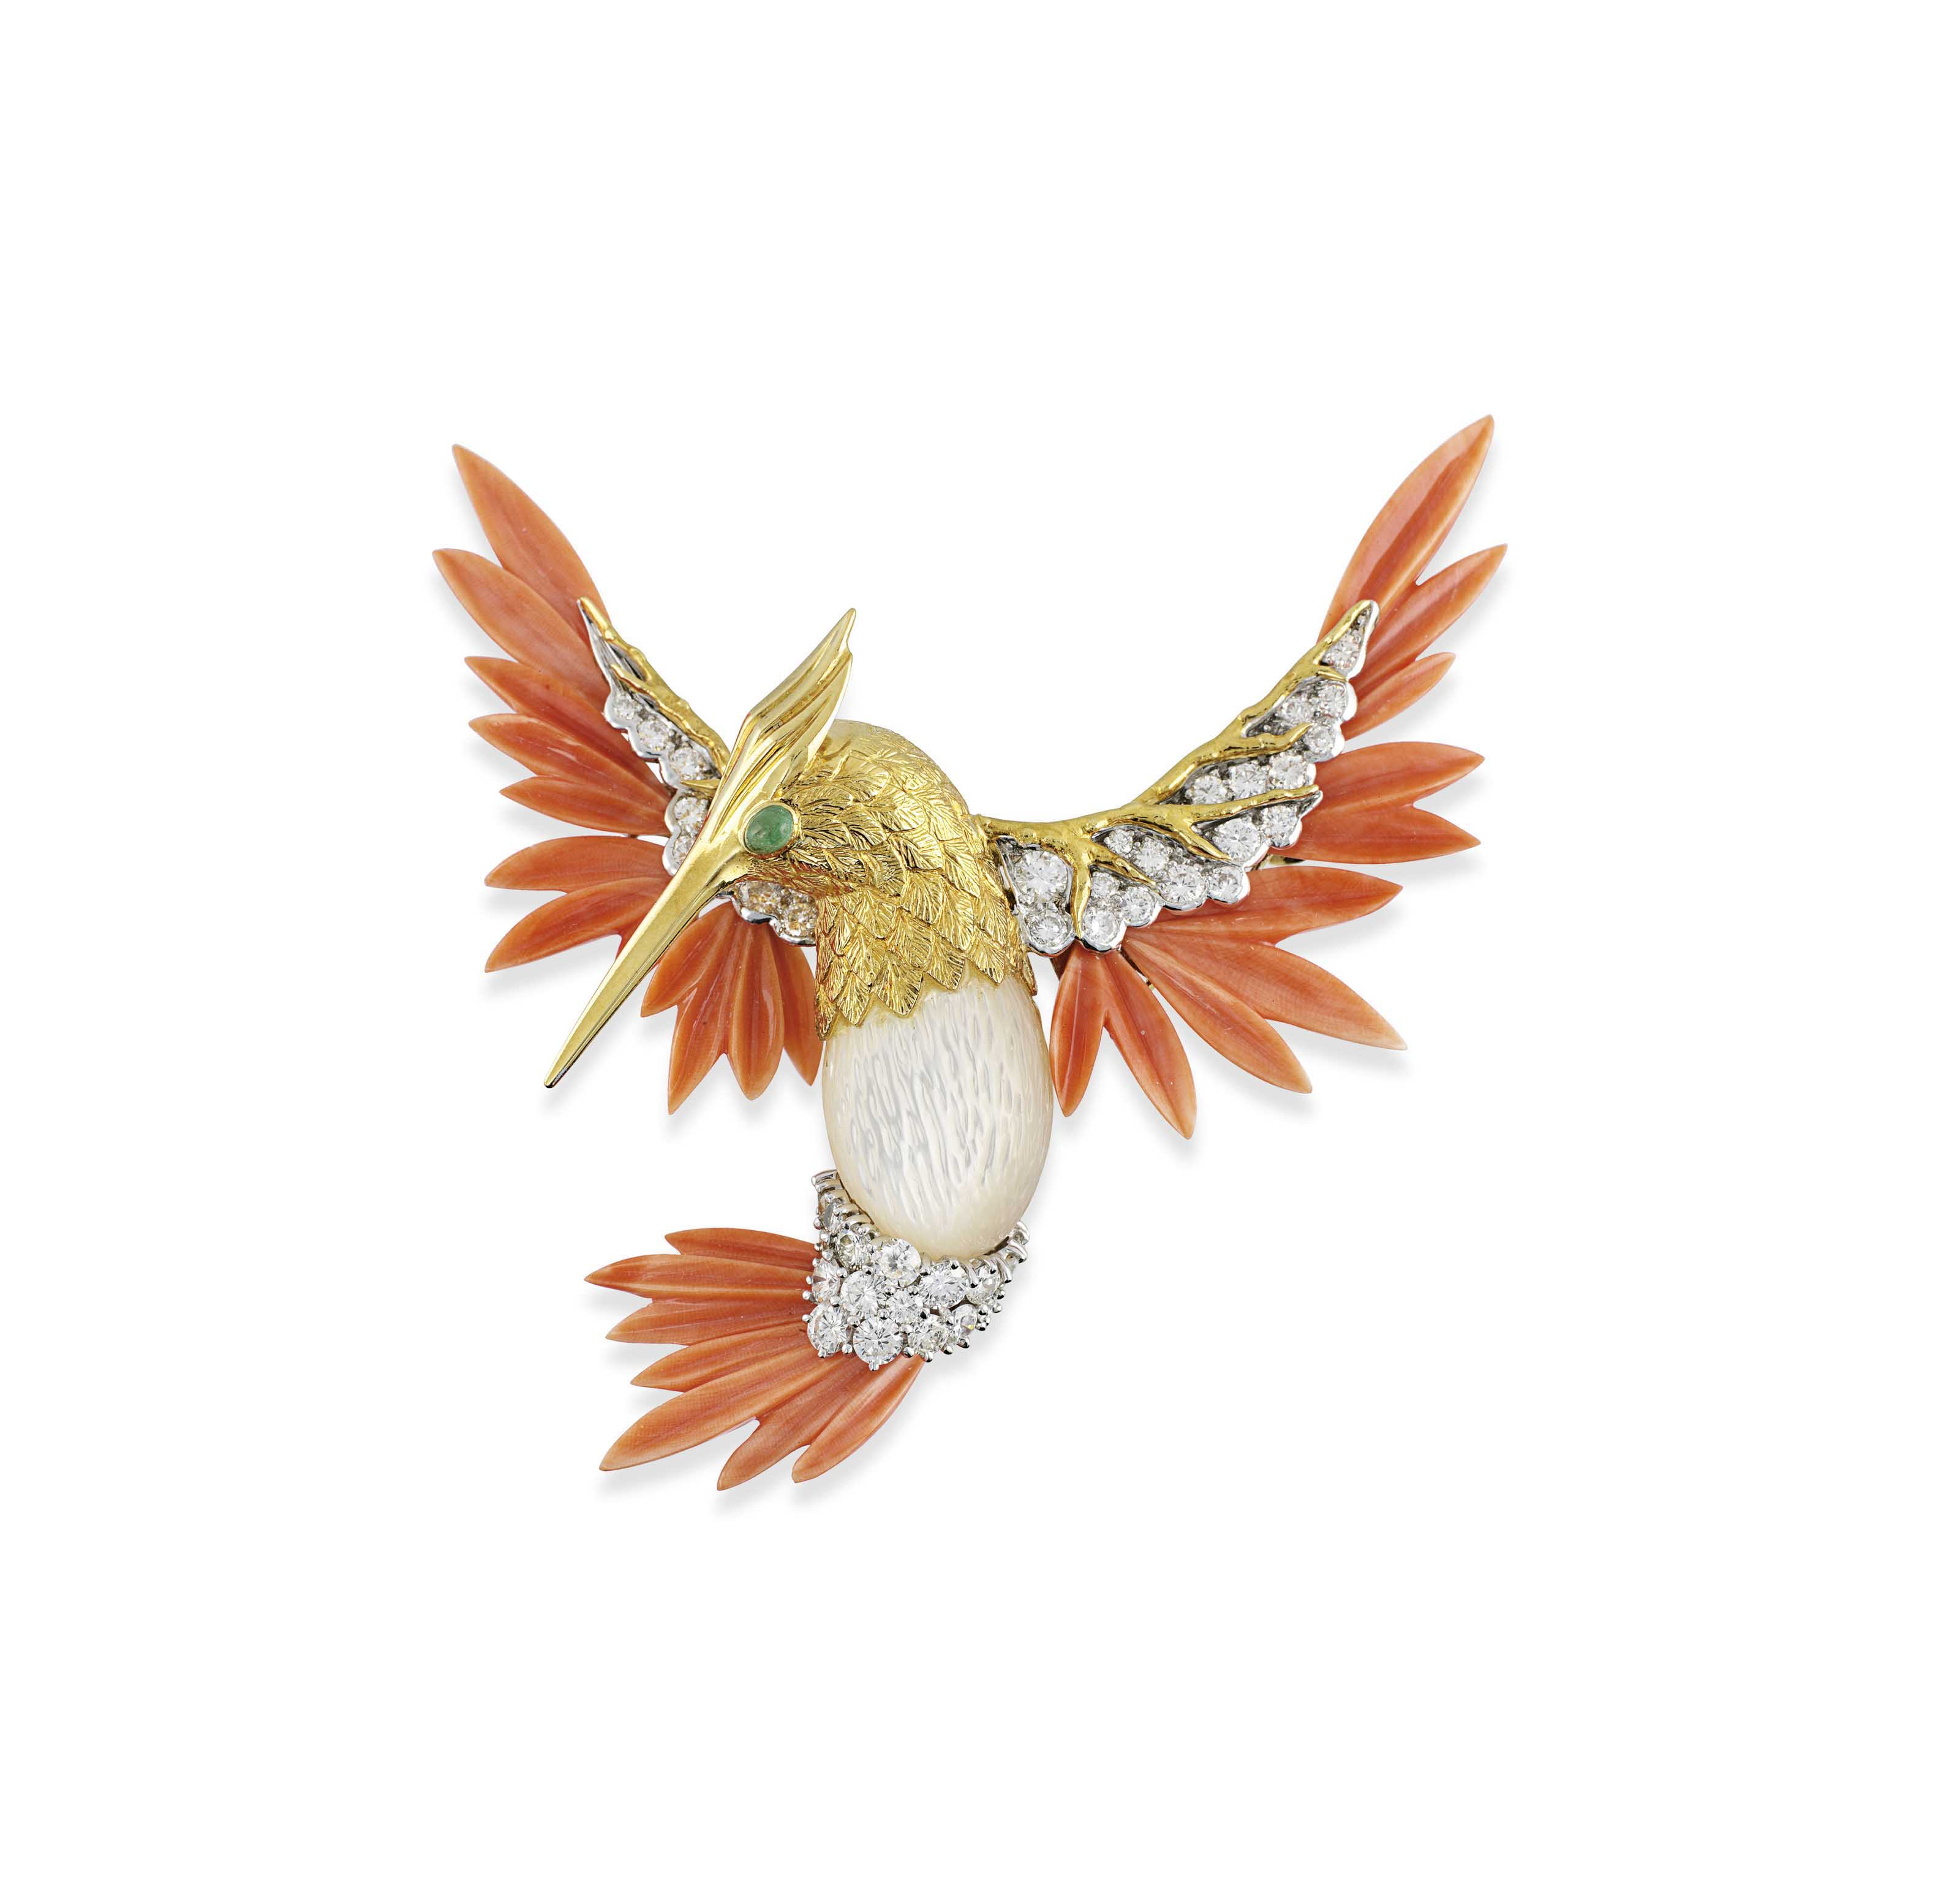 AN 18CT GOLD, CORAL, MOTHER-OF-PEARL AND DIAMOND HUMMINGBIRD BROOCH, BY KUTCHINSKY